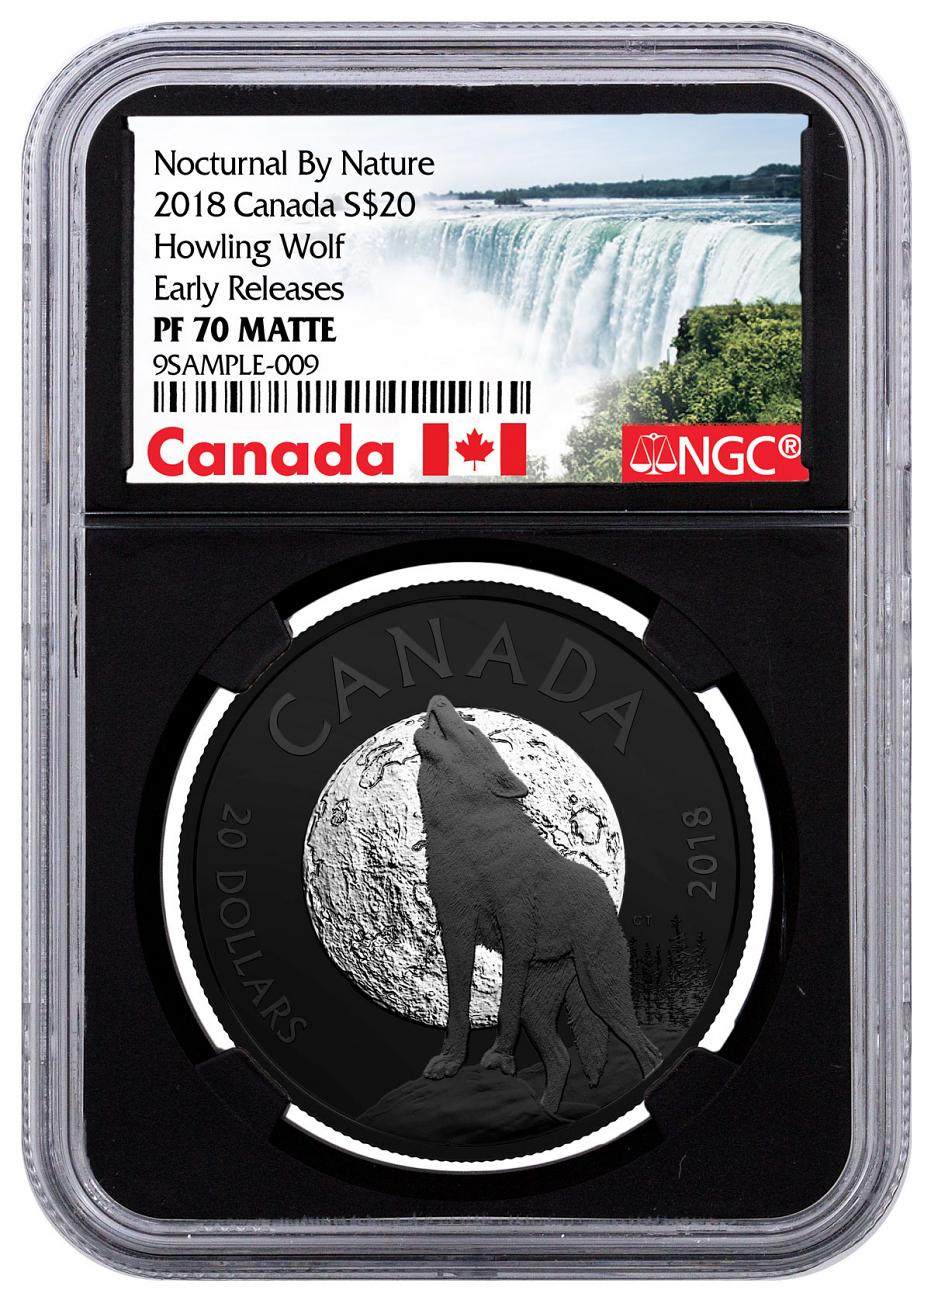 2018 Canada Nocturnal By Nature - The Howling Wolf 1 oz Black Rhodium Plated Silver Matte Proof $20 Coin NGC PF70 ER Black Core Holder Exclusive Canada Label